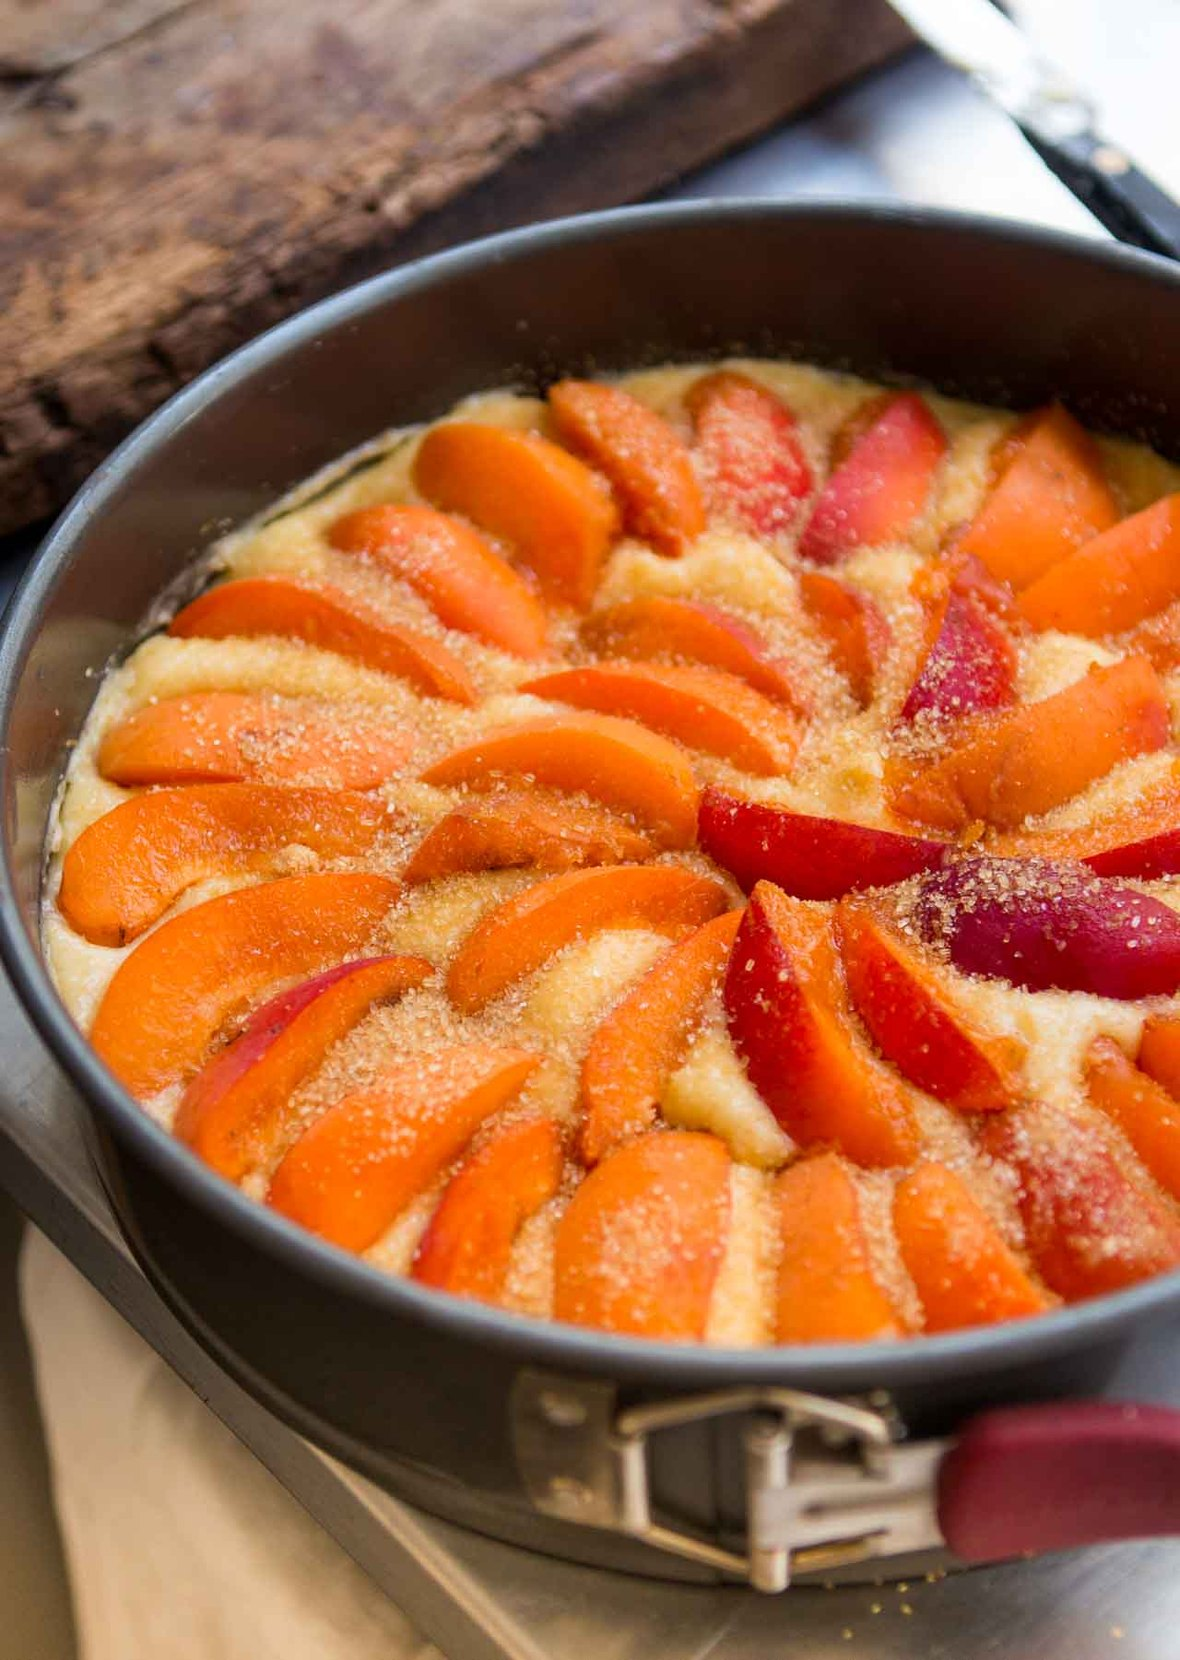 Moelleux apricot plum cake summer french dessert recipe fruits fruit-3